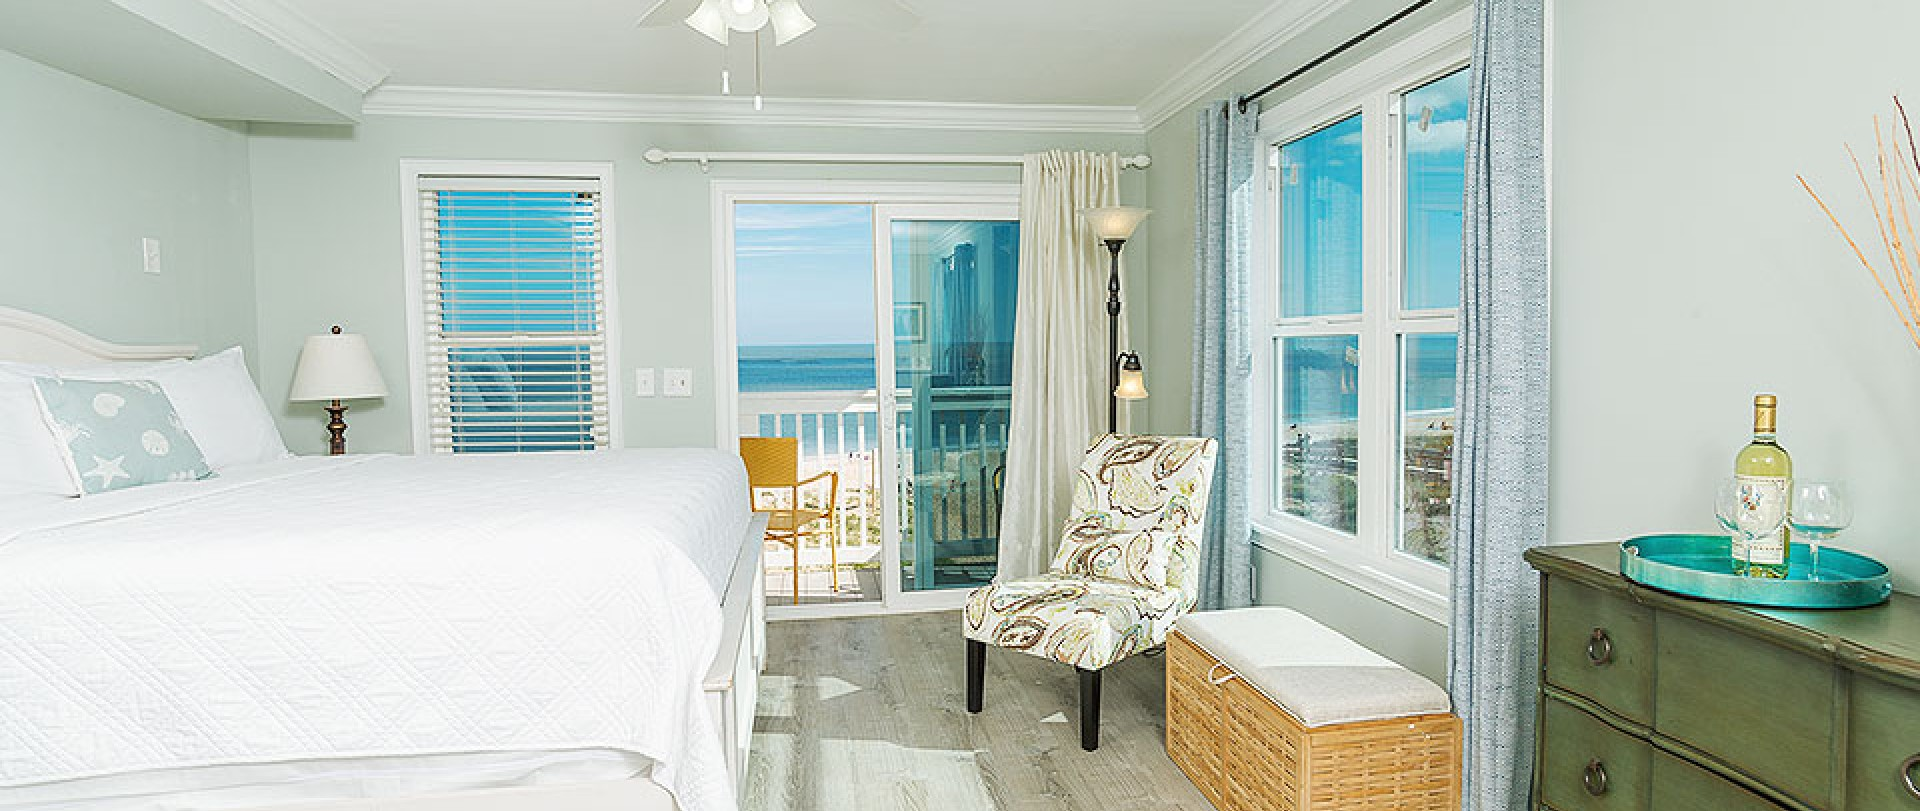 Room with king bed, dresser and chair next to window with ocean view (tablet version)